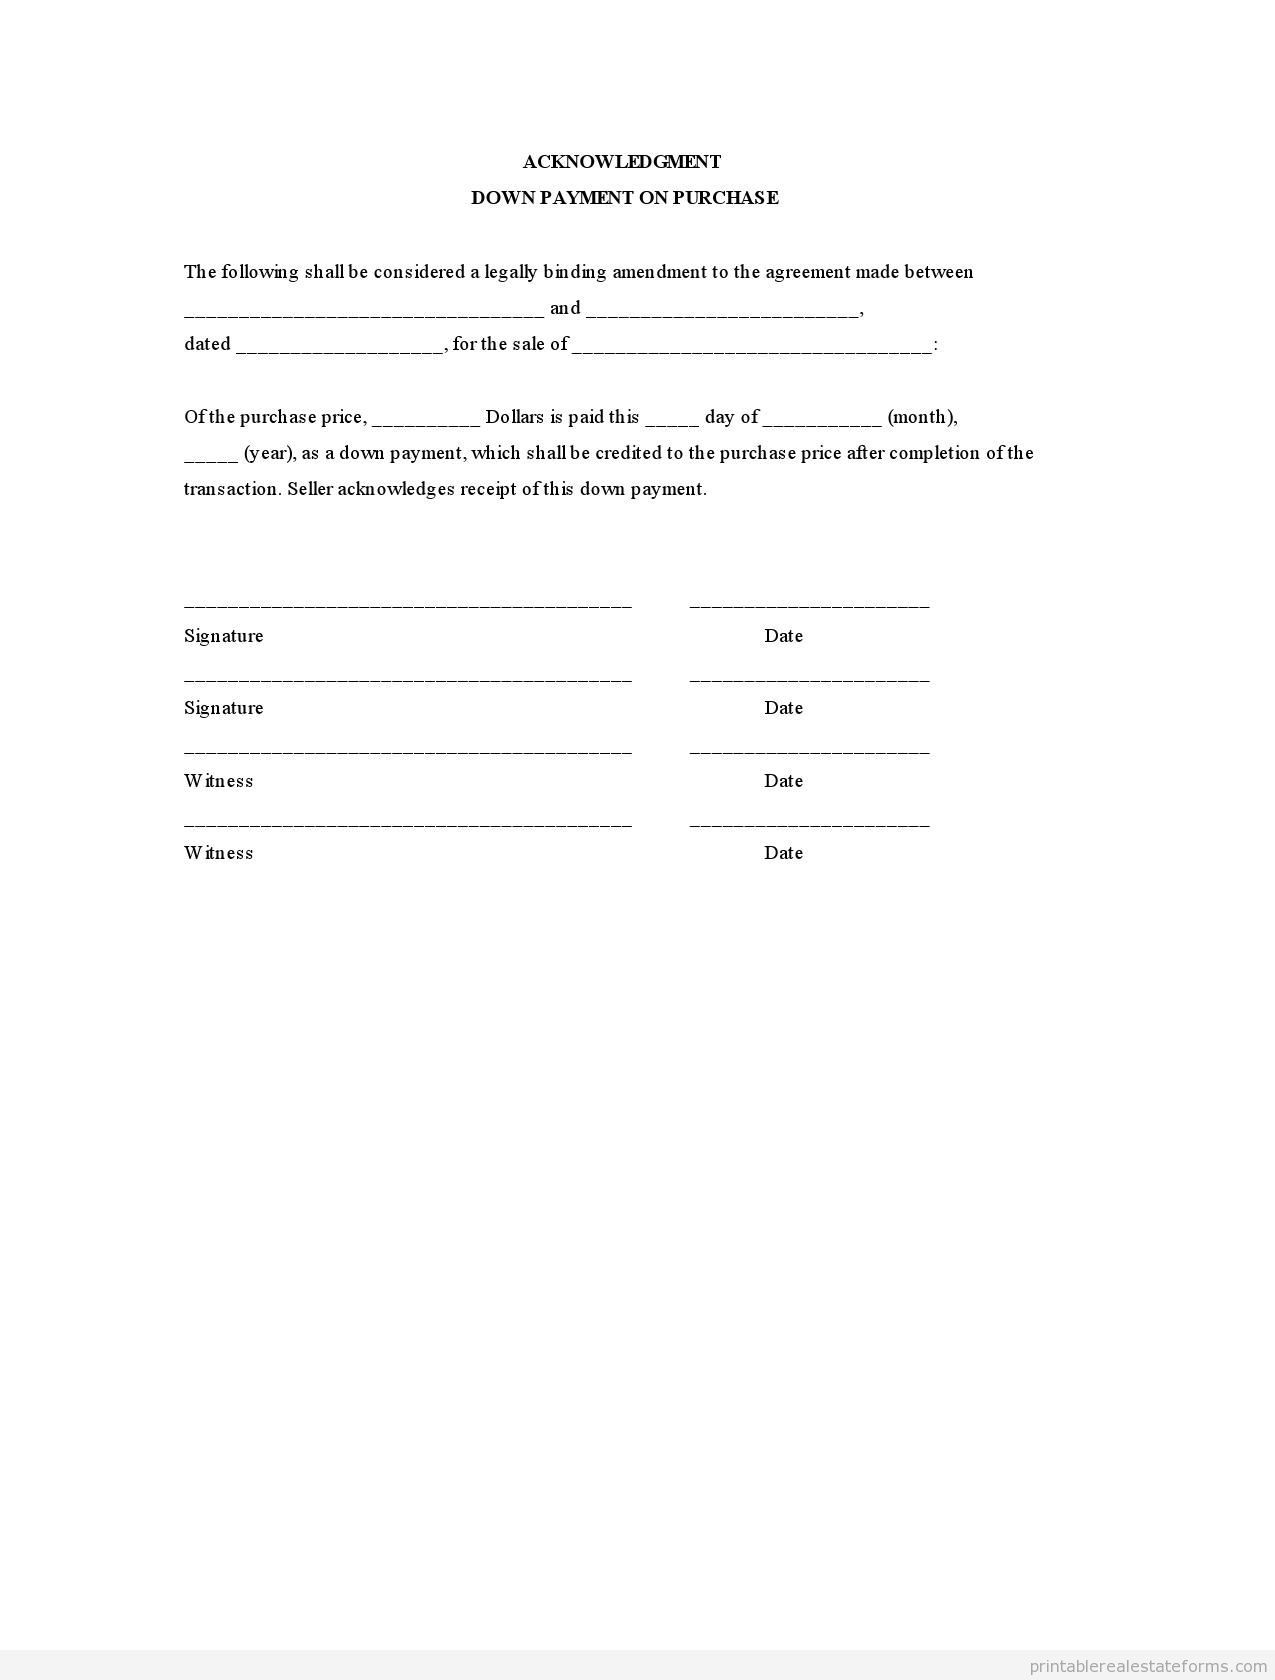 Sample Printable Acknowledgment Down Payment On Purchase